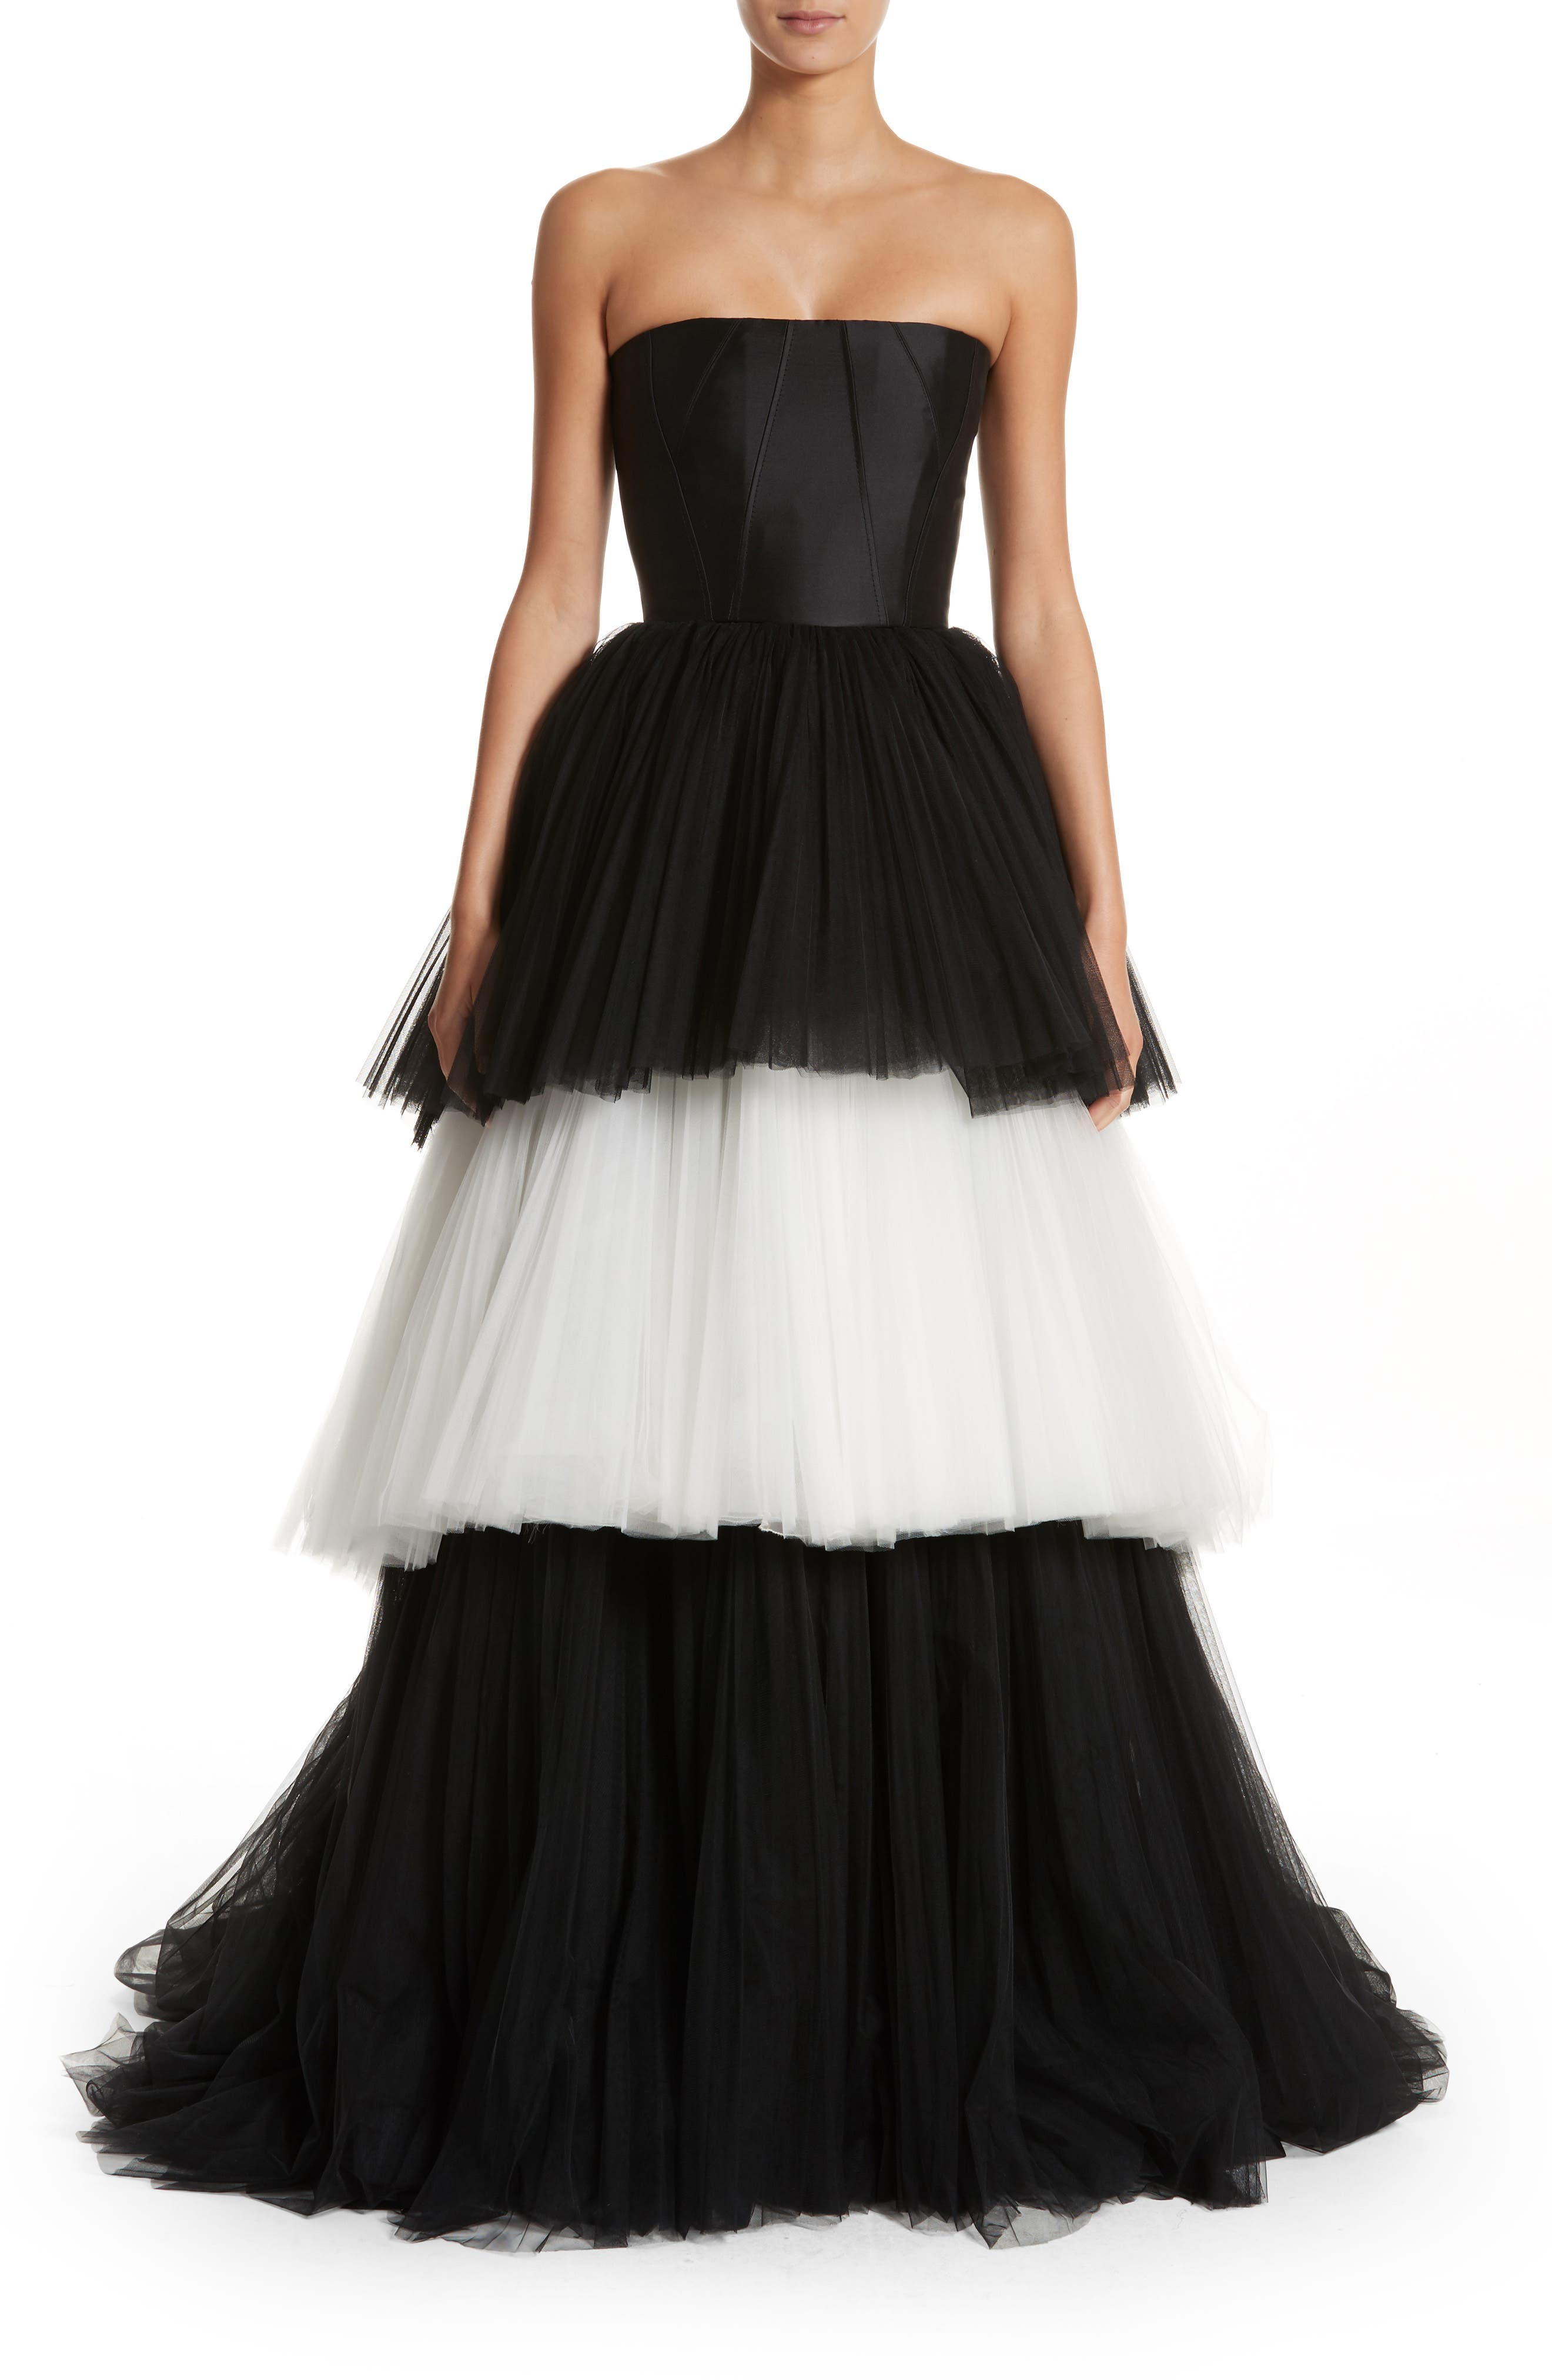 Strapless Layered Tulle Gown,                         Main,                         color, Black/White